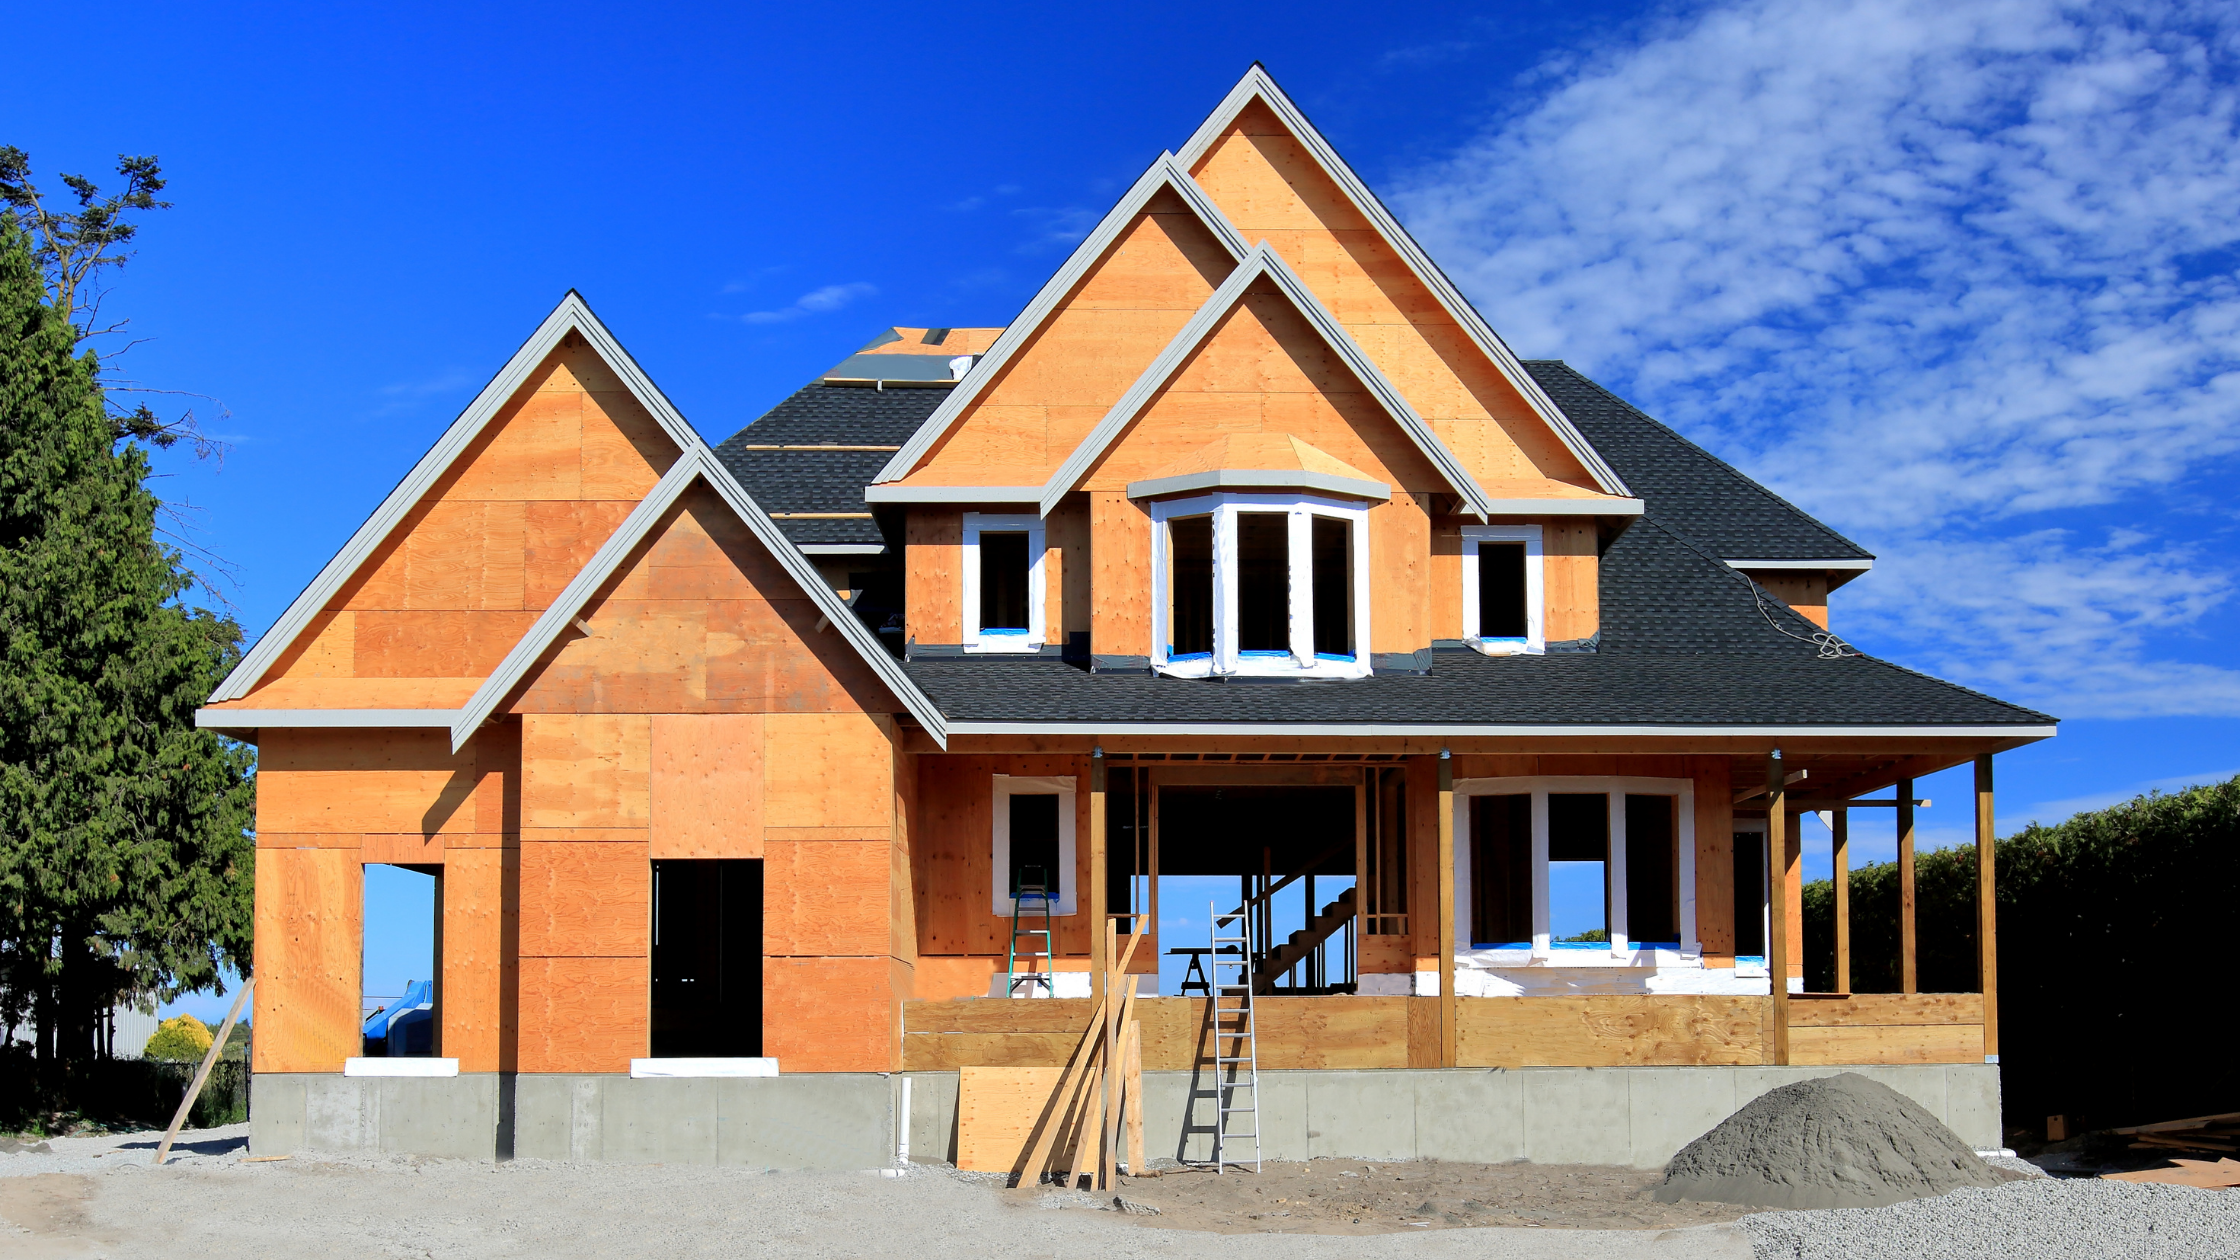 Looking for New Construction? Here's What to Keep in Mind